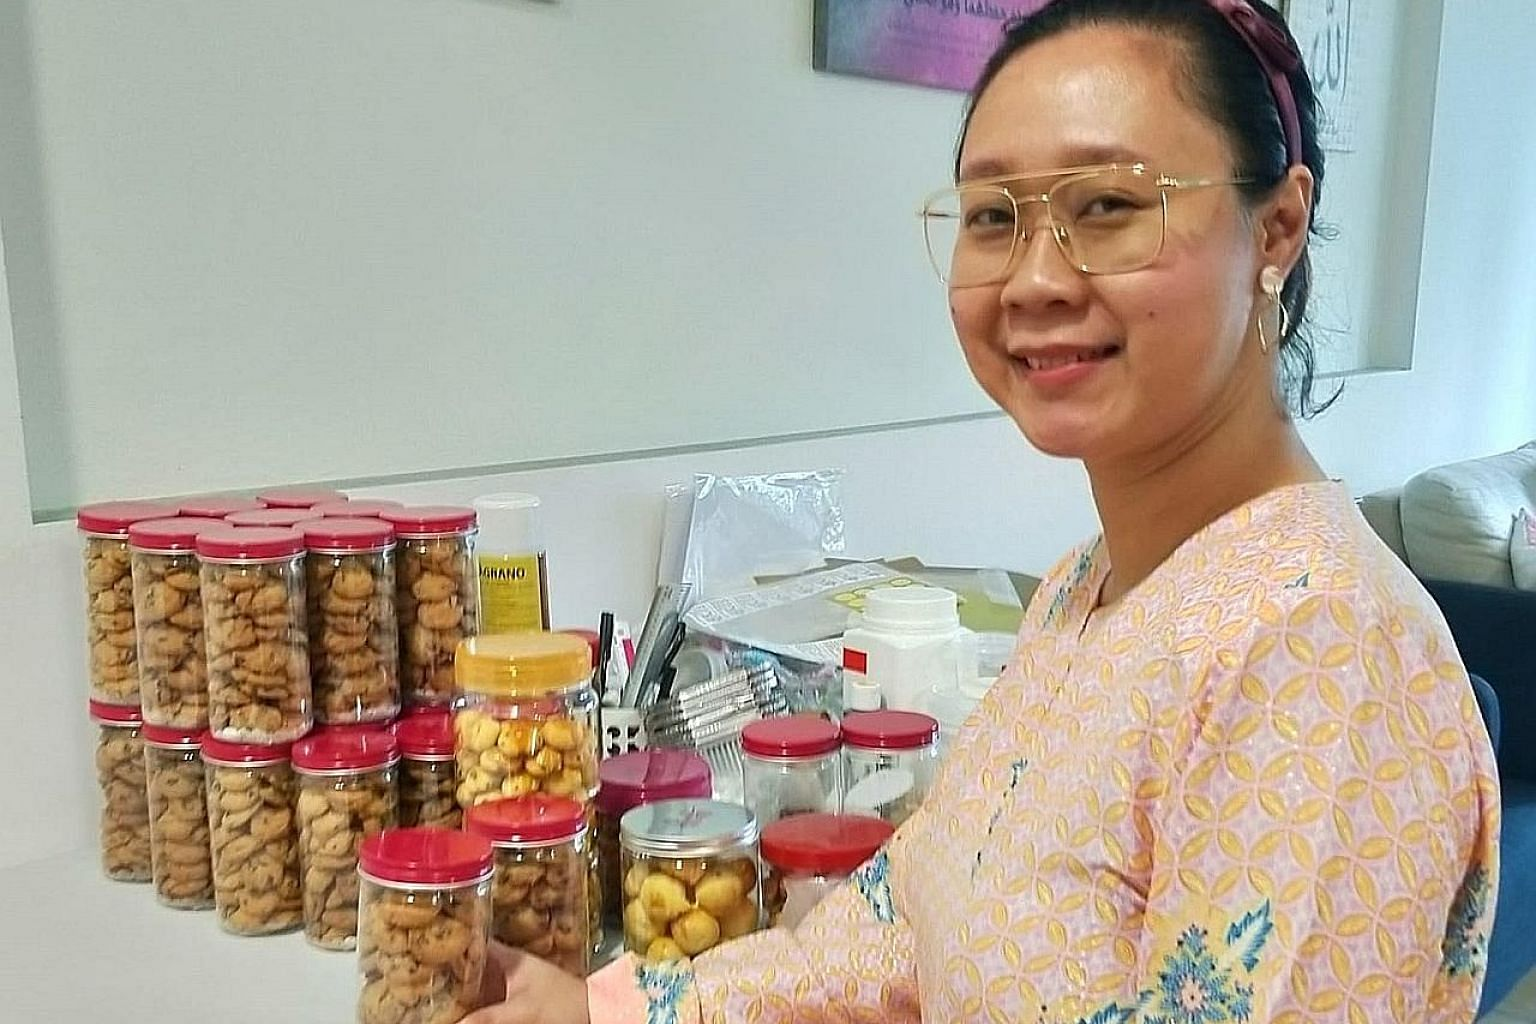 Ms Siti Hartini, owner of home bakery Shartini's Food Journal, has seen sales increase by about 20 per cent after the easing of restrictions on home-based food businesses from May 12. Experts said pent-up demand could have boosted sales for home bake